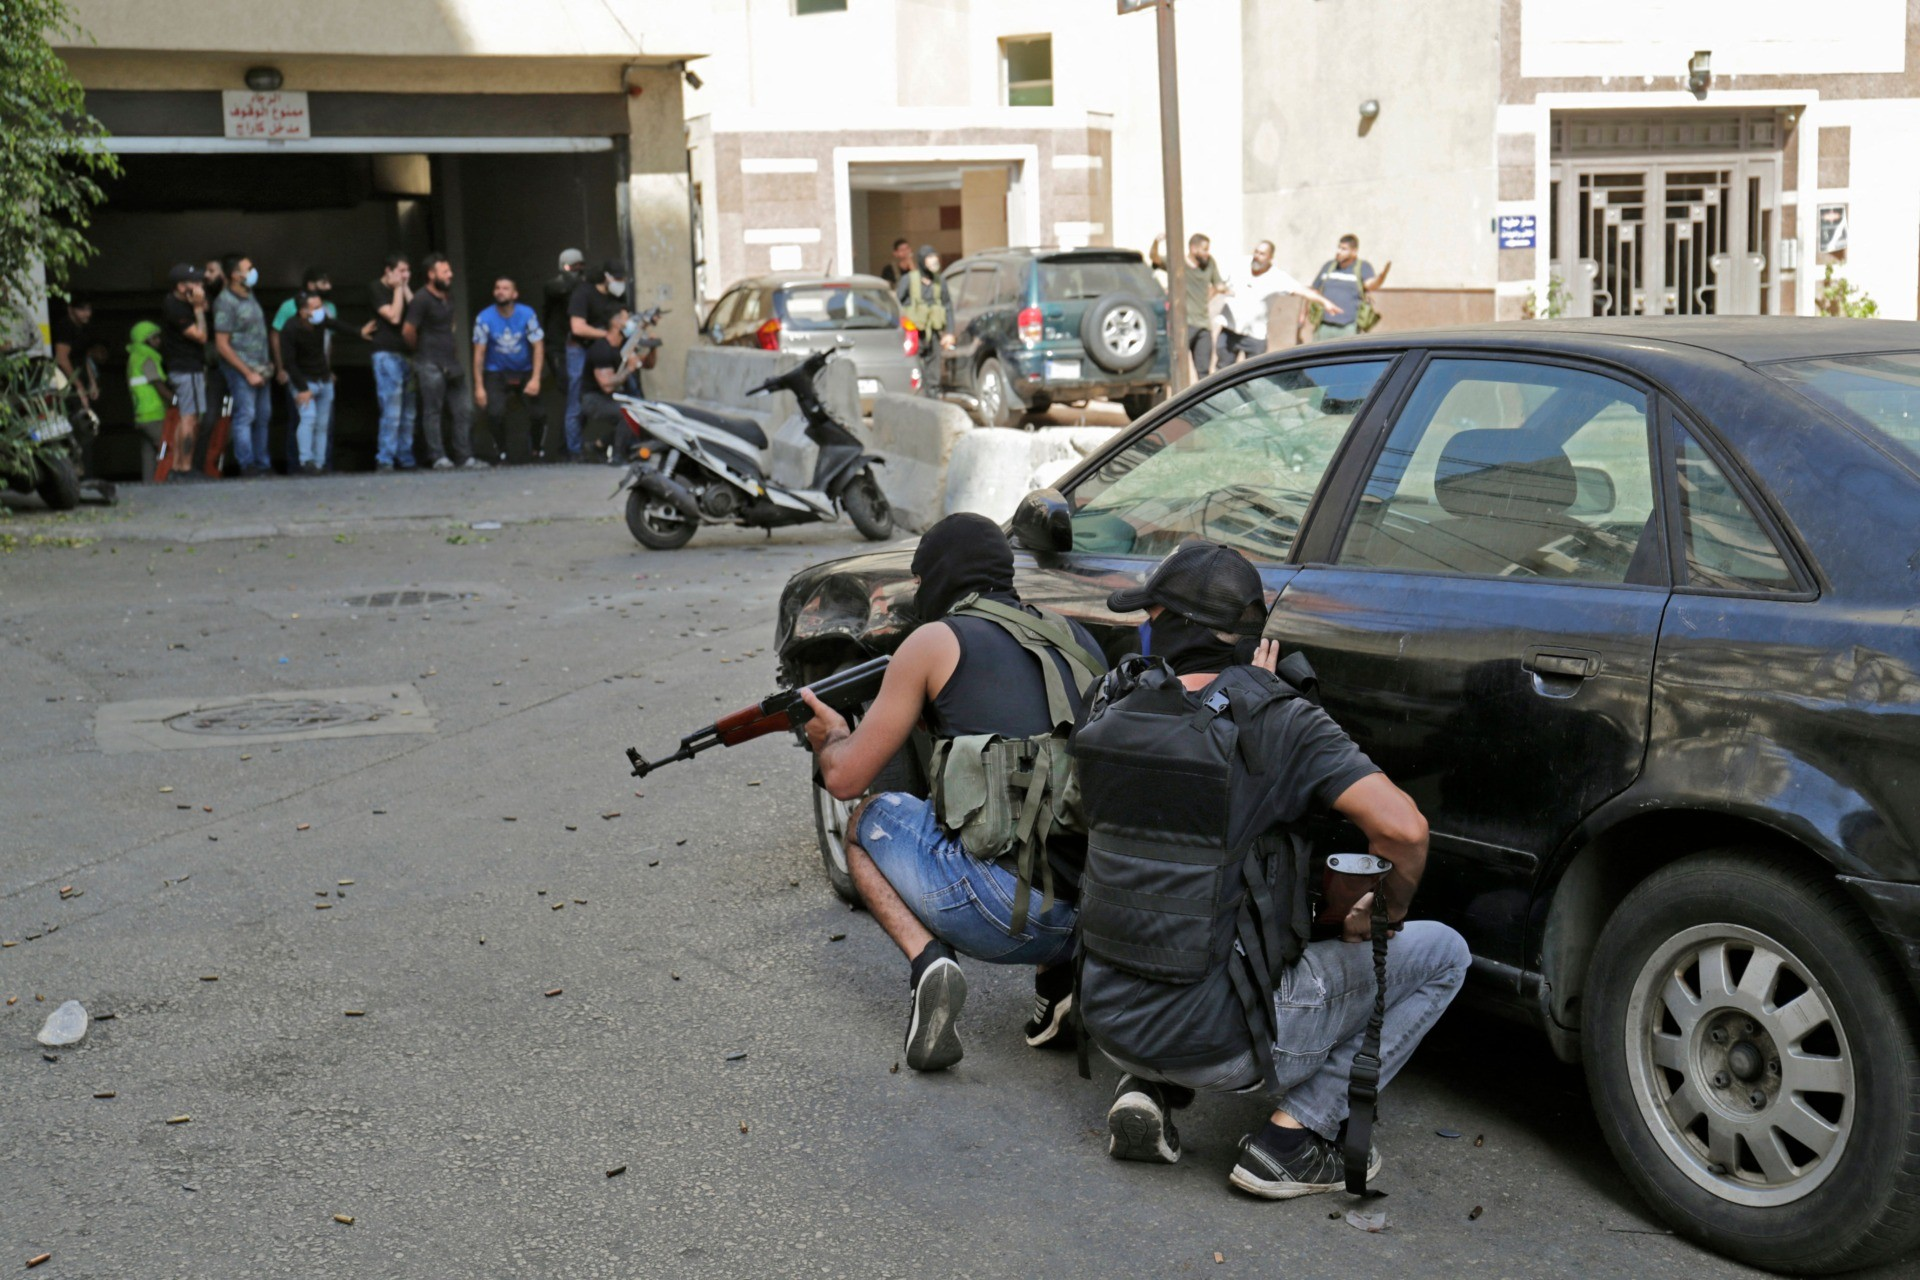 Shiite fighters take cover during clashes in the area of Tayouneh, in the southern suburb of the capital Beirut, on October 14, 2021. - Gunfire killed at least three people and wounded 20 at a Beirut rally organised by the Shiite Hezbollah and Amal movements to demand the dismissal of the Beirut blast lead investigator. (Photo by ANWAR AMRO / AFP) (Photo by ANWAR AMRO/AFP via Getty Images)